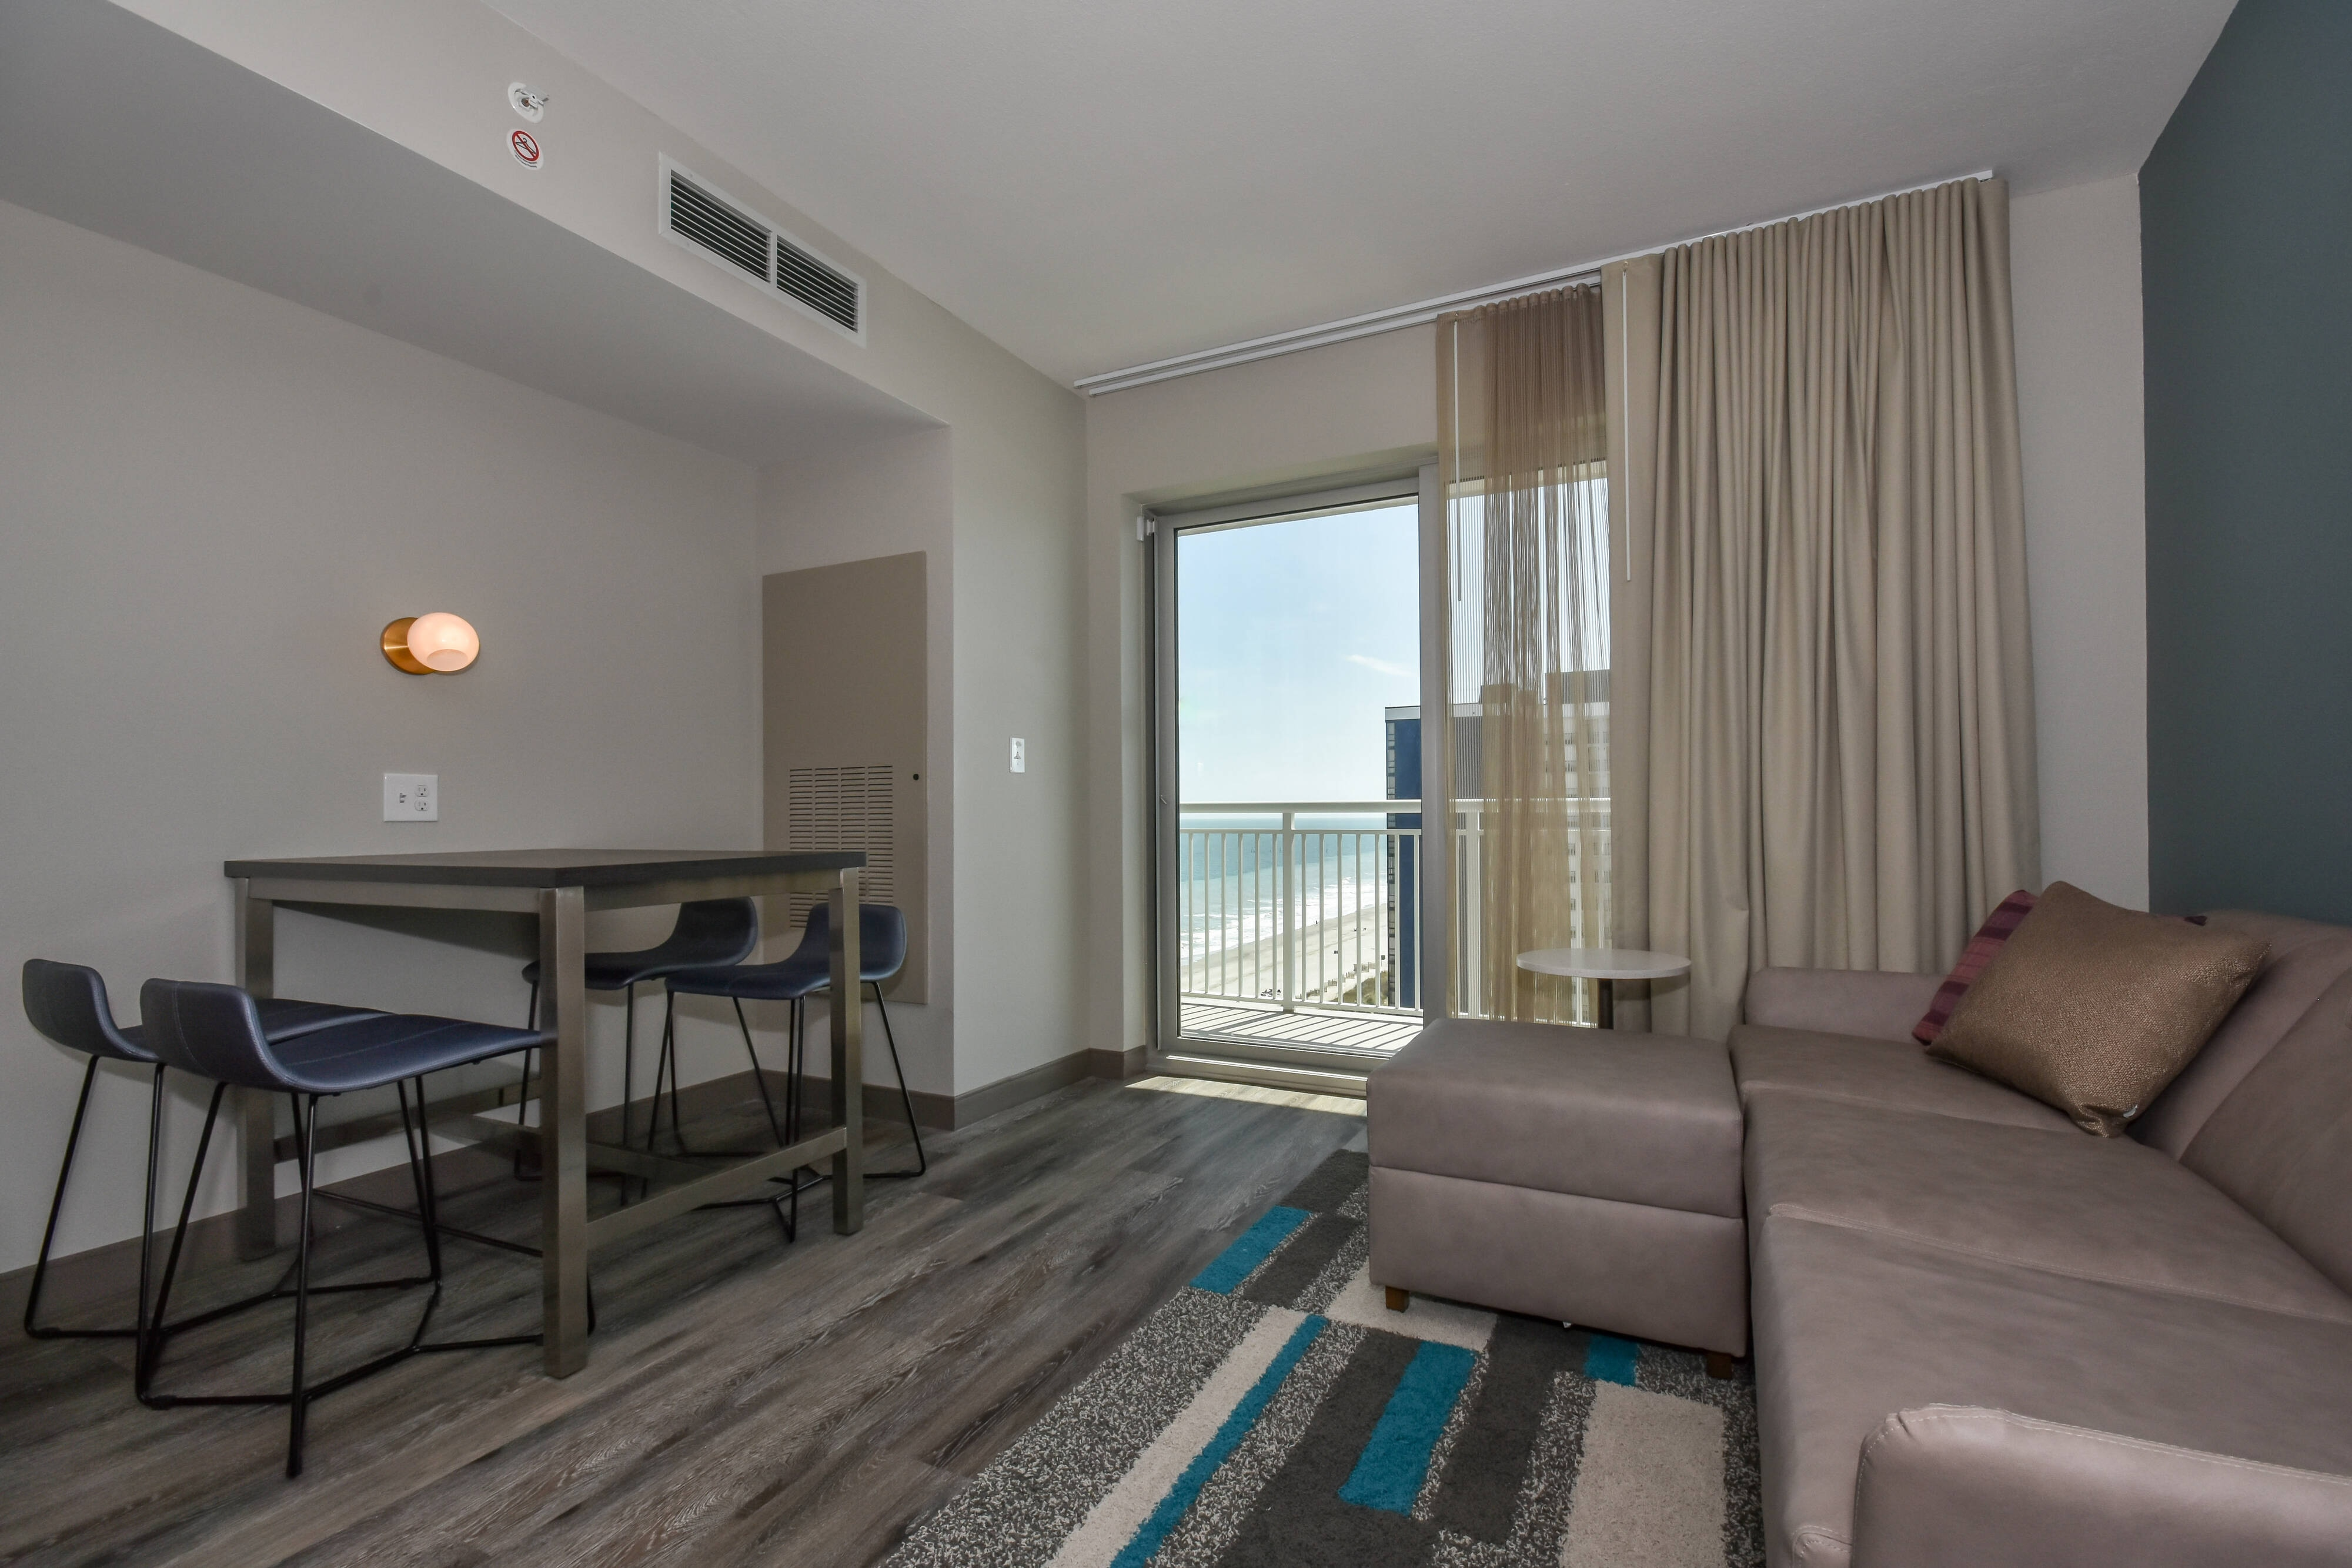 Hotel Rooms & Amenities | Residence Inn Myrtle Beach ...